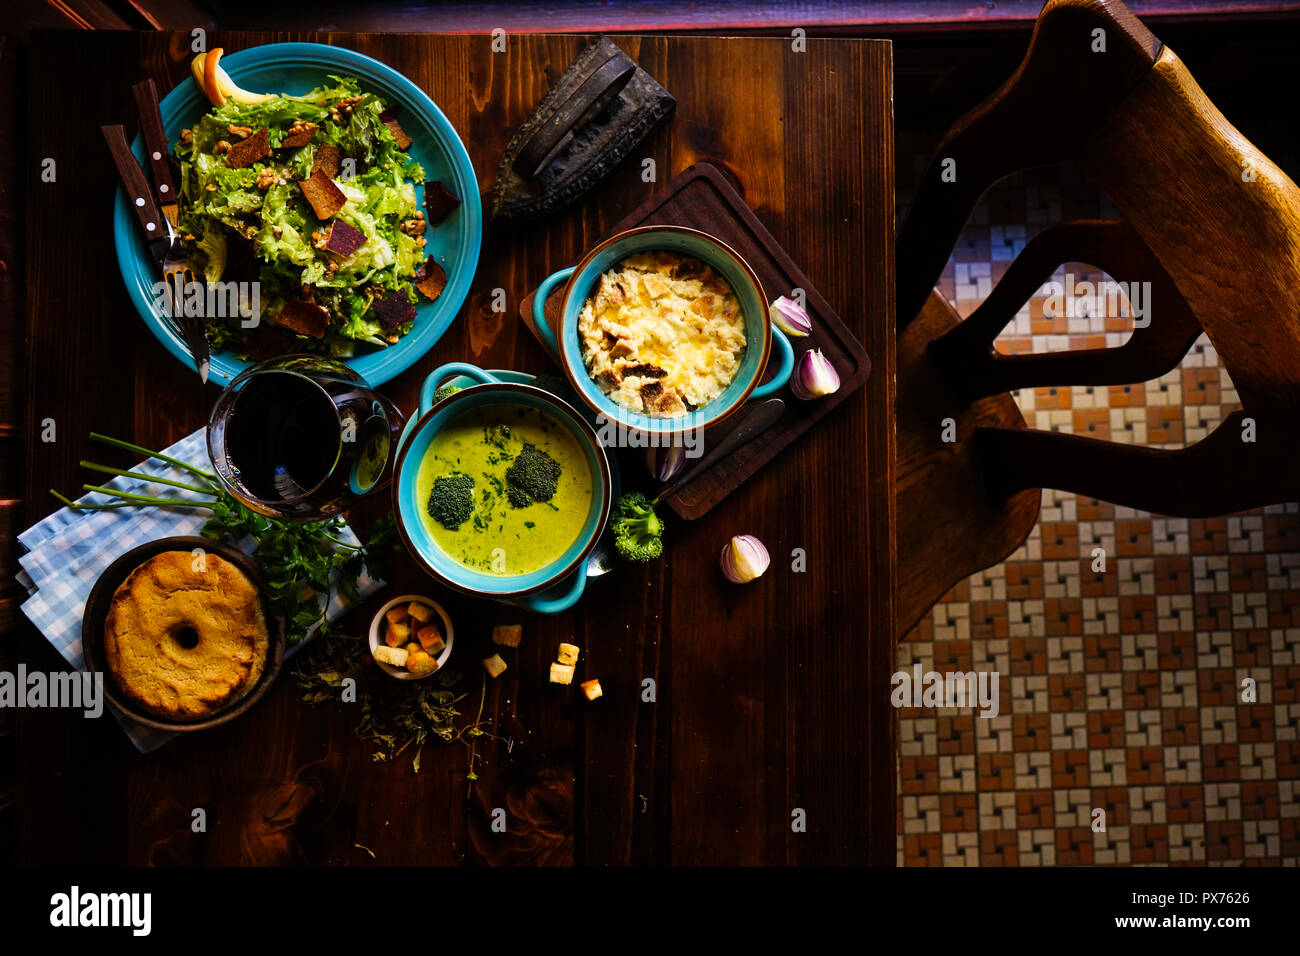 Rustic dinner set with healthy broccoli cream soup, salad